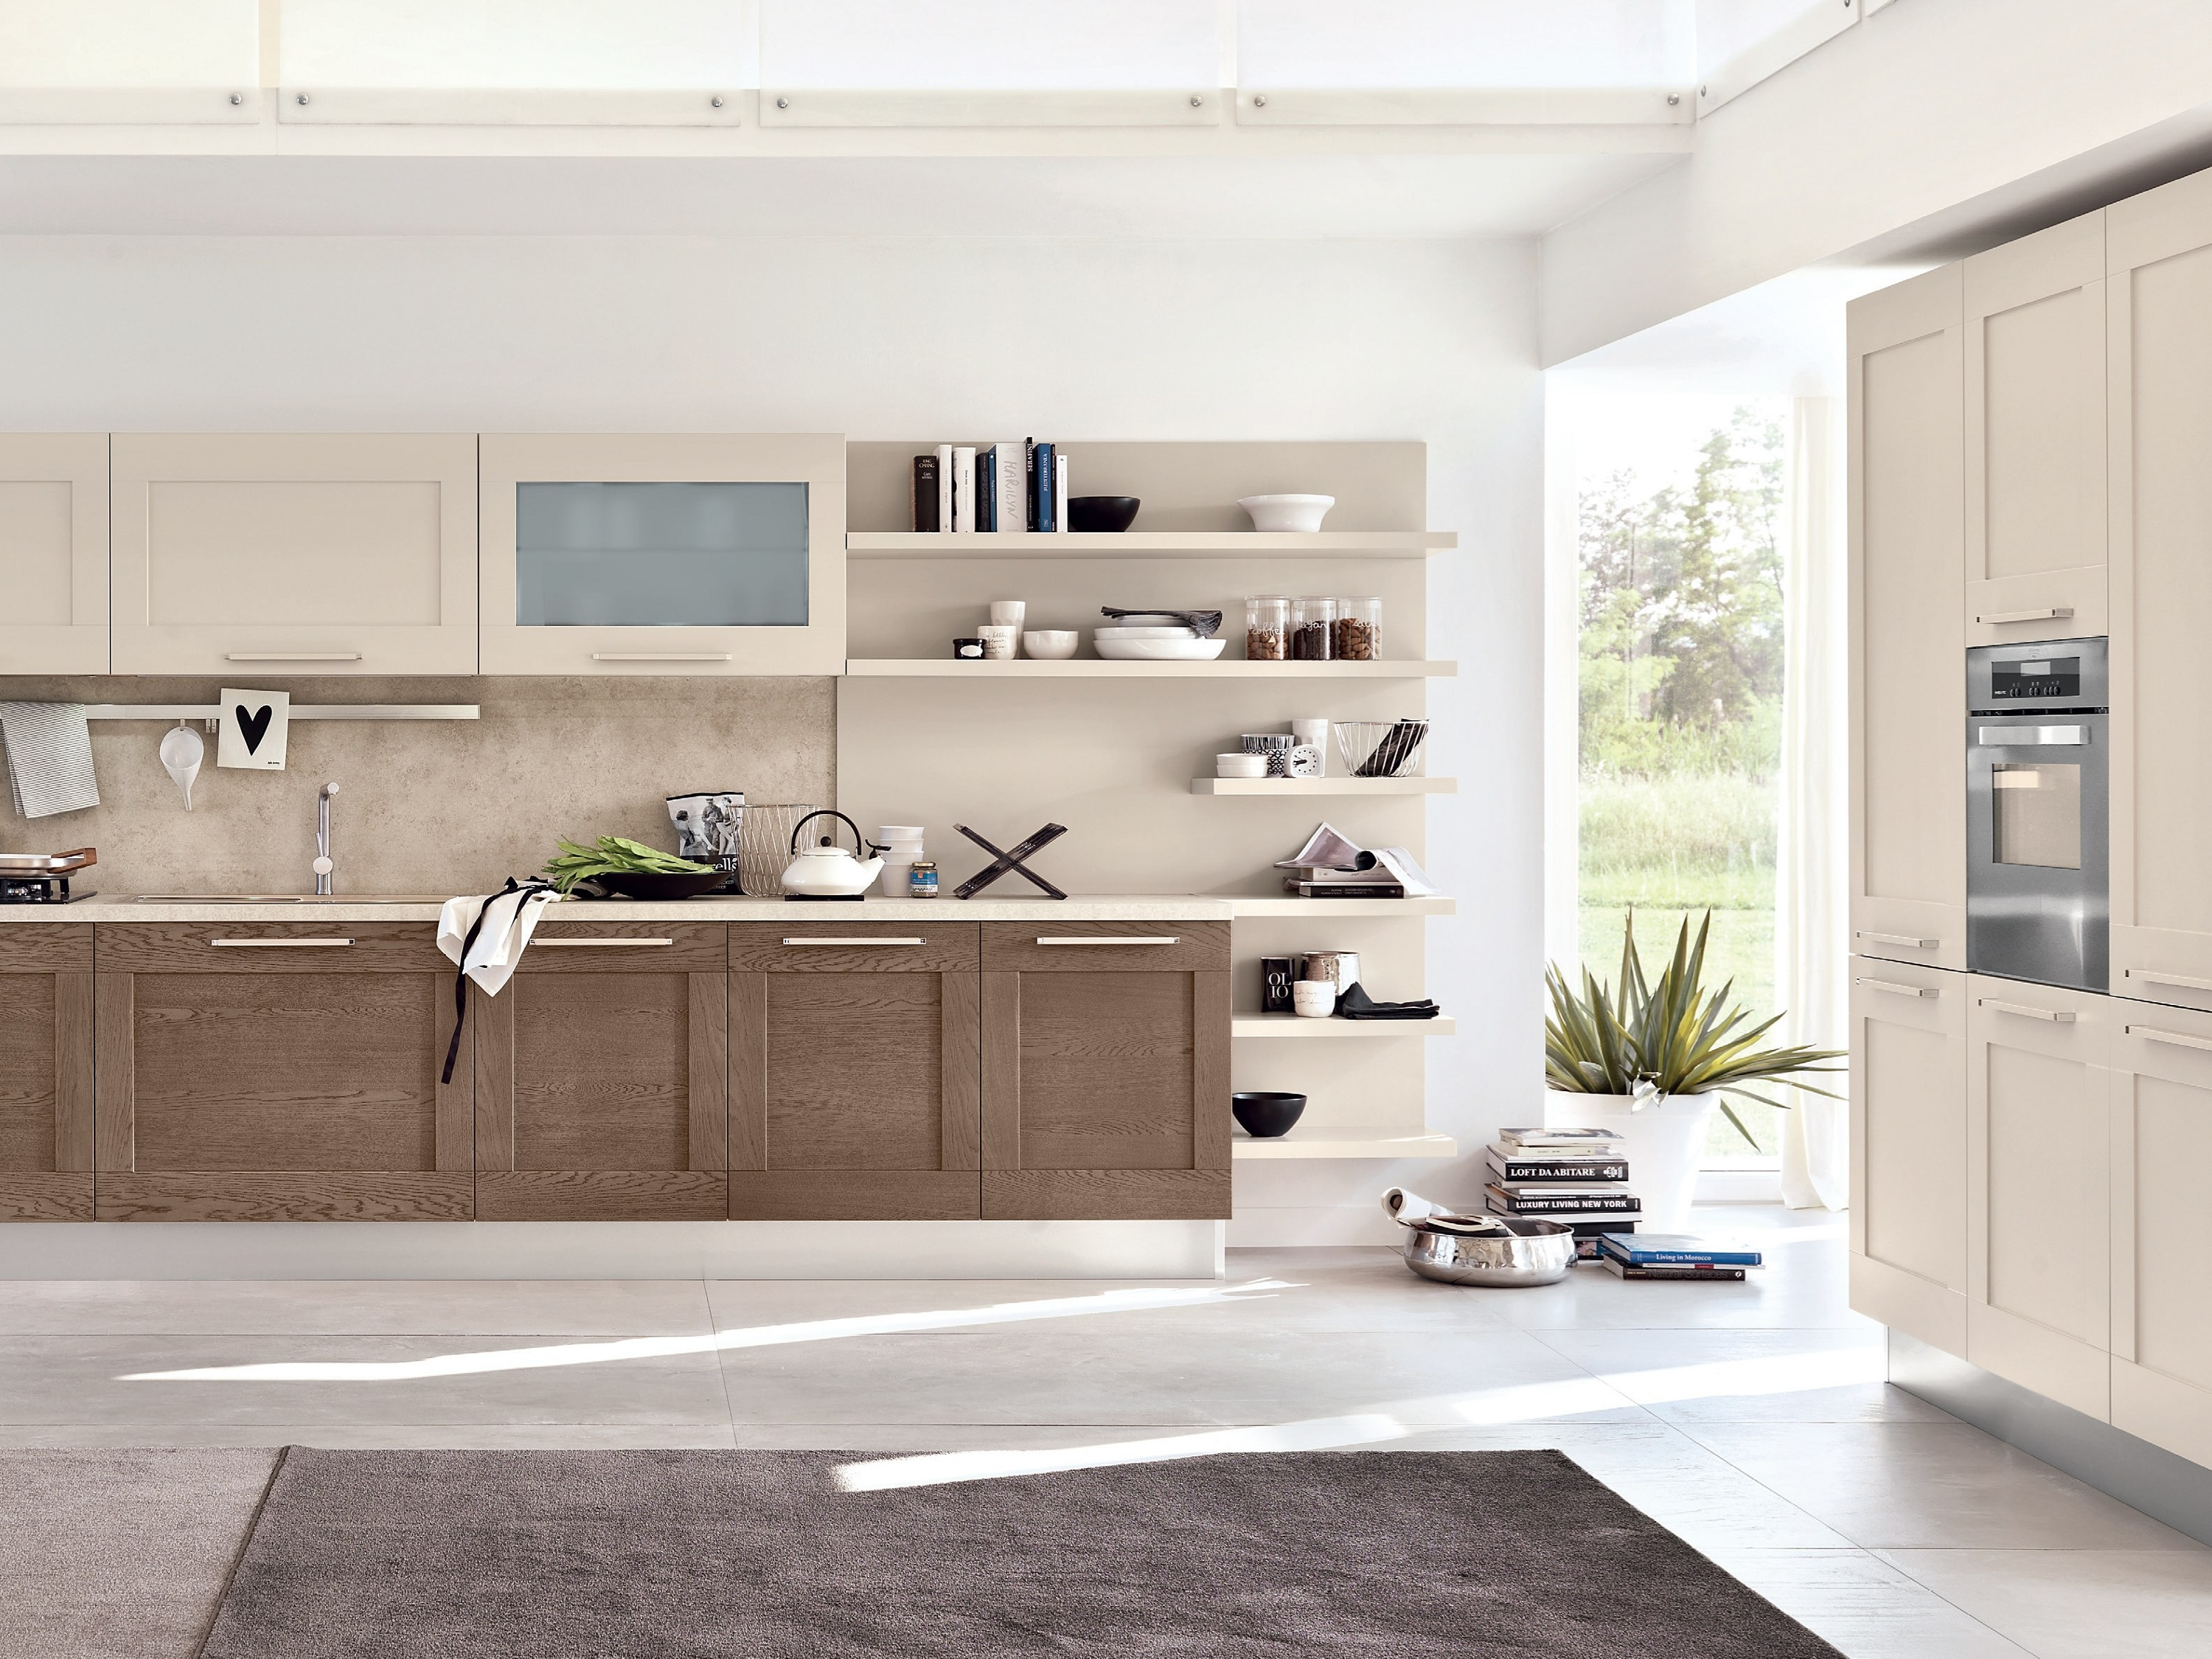 Gallery Kitchen With Handles By Cucine Lube Design Studio Ferriani